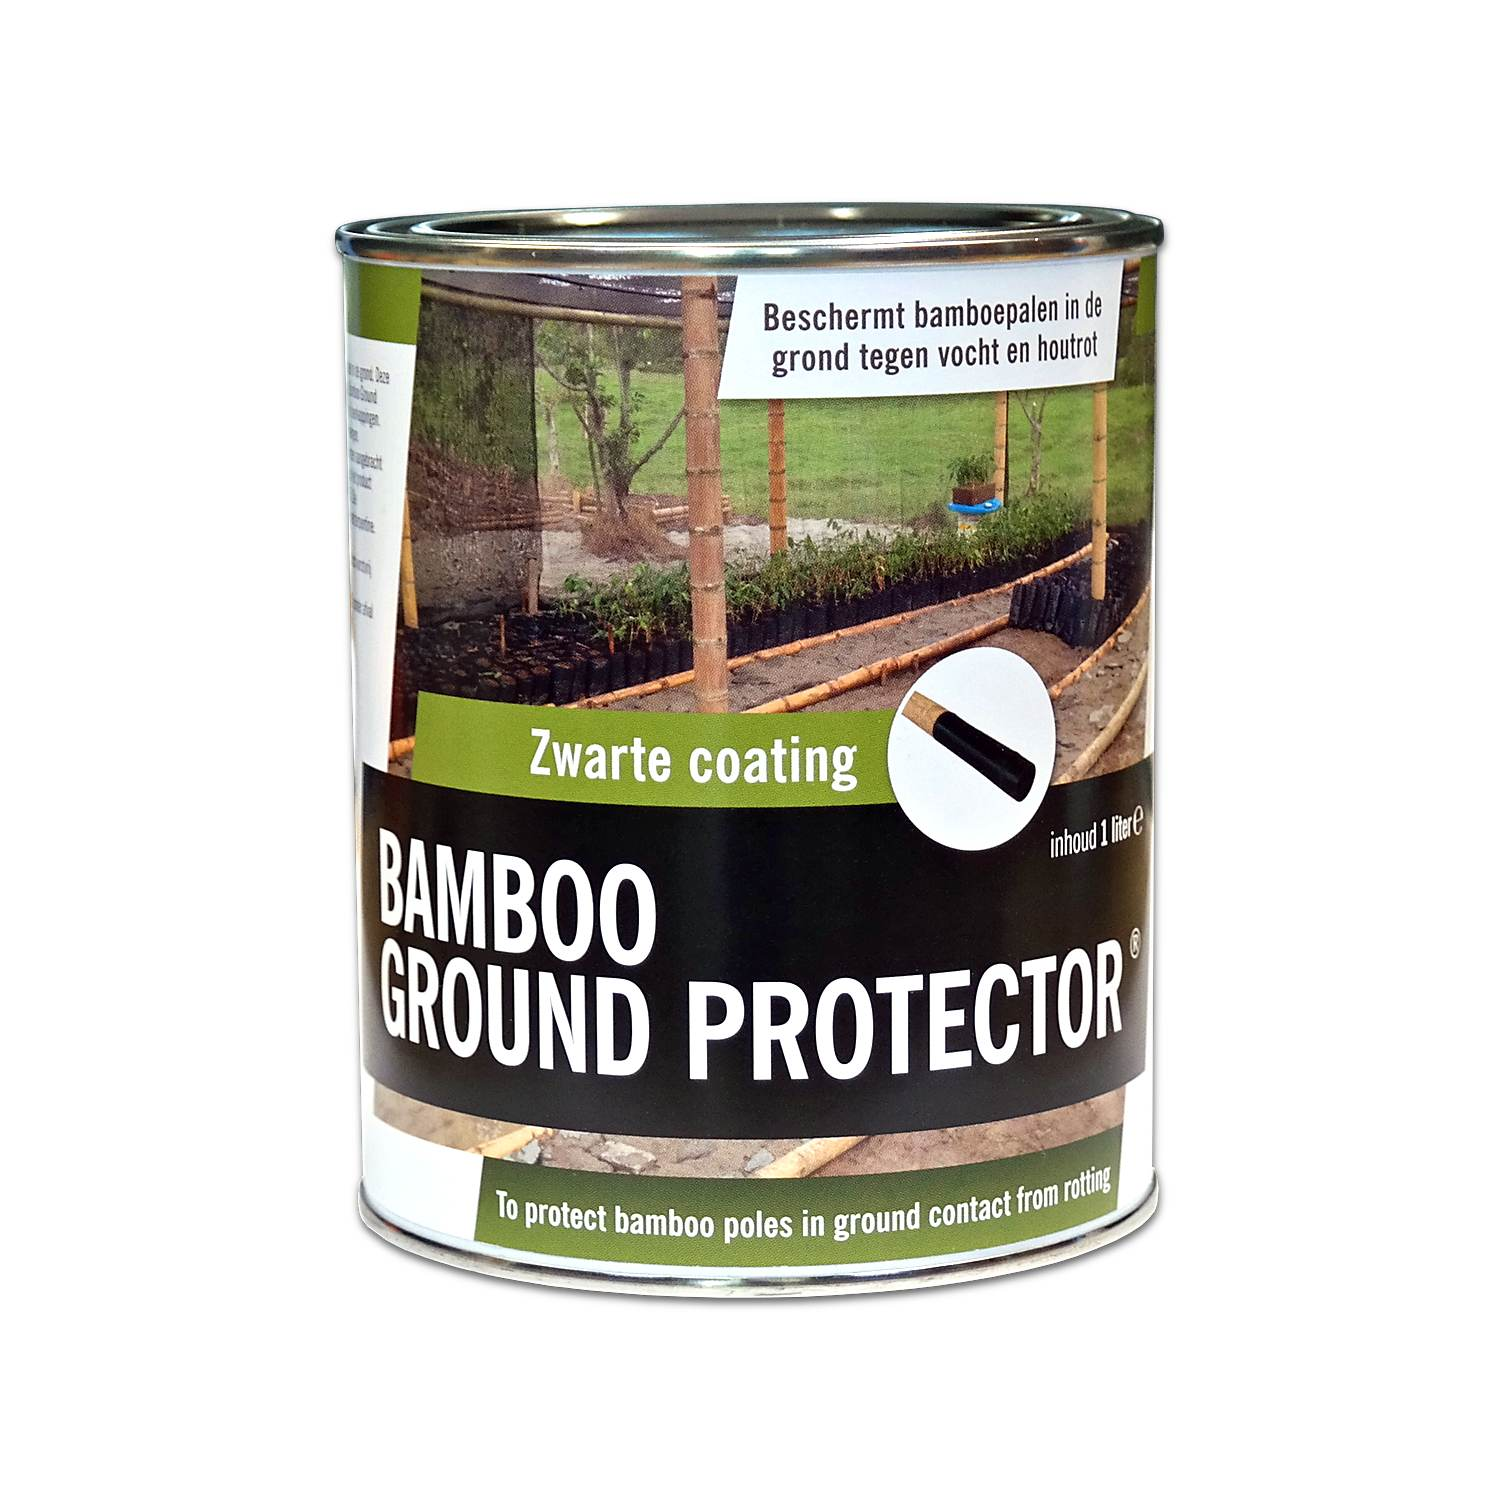 Bamboo ground protector